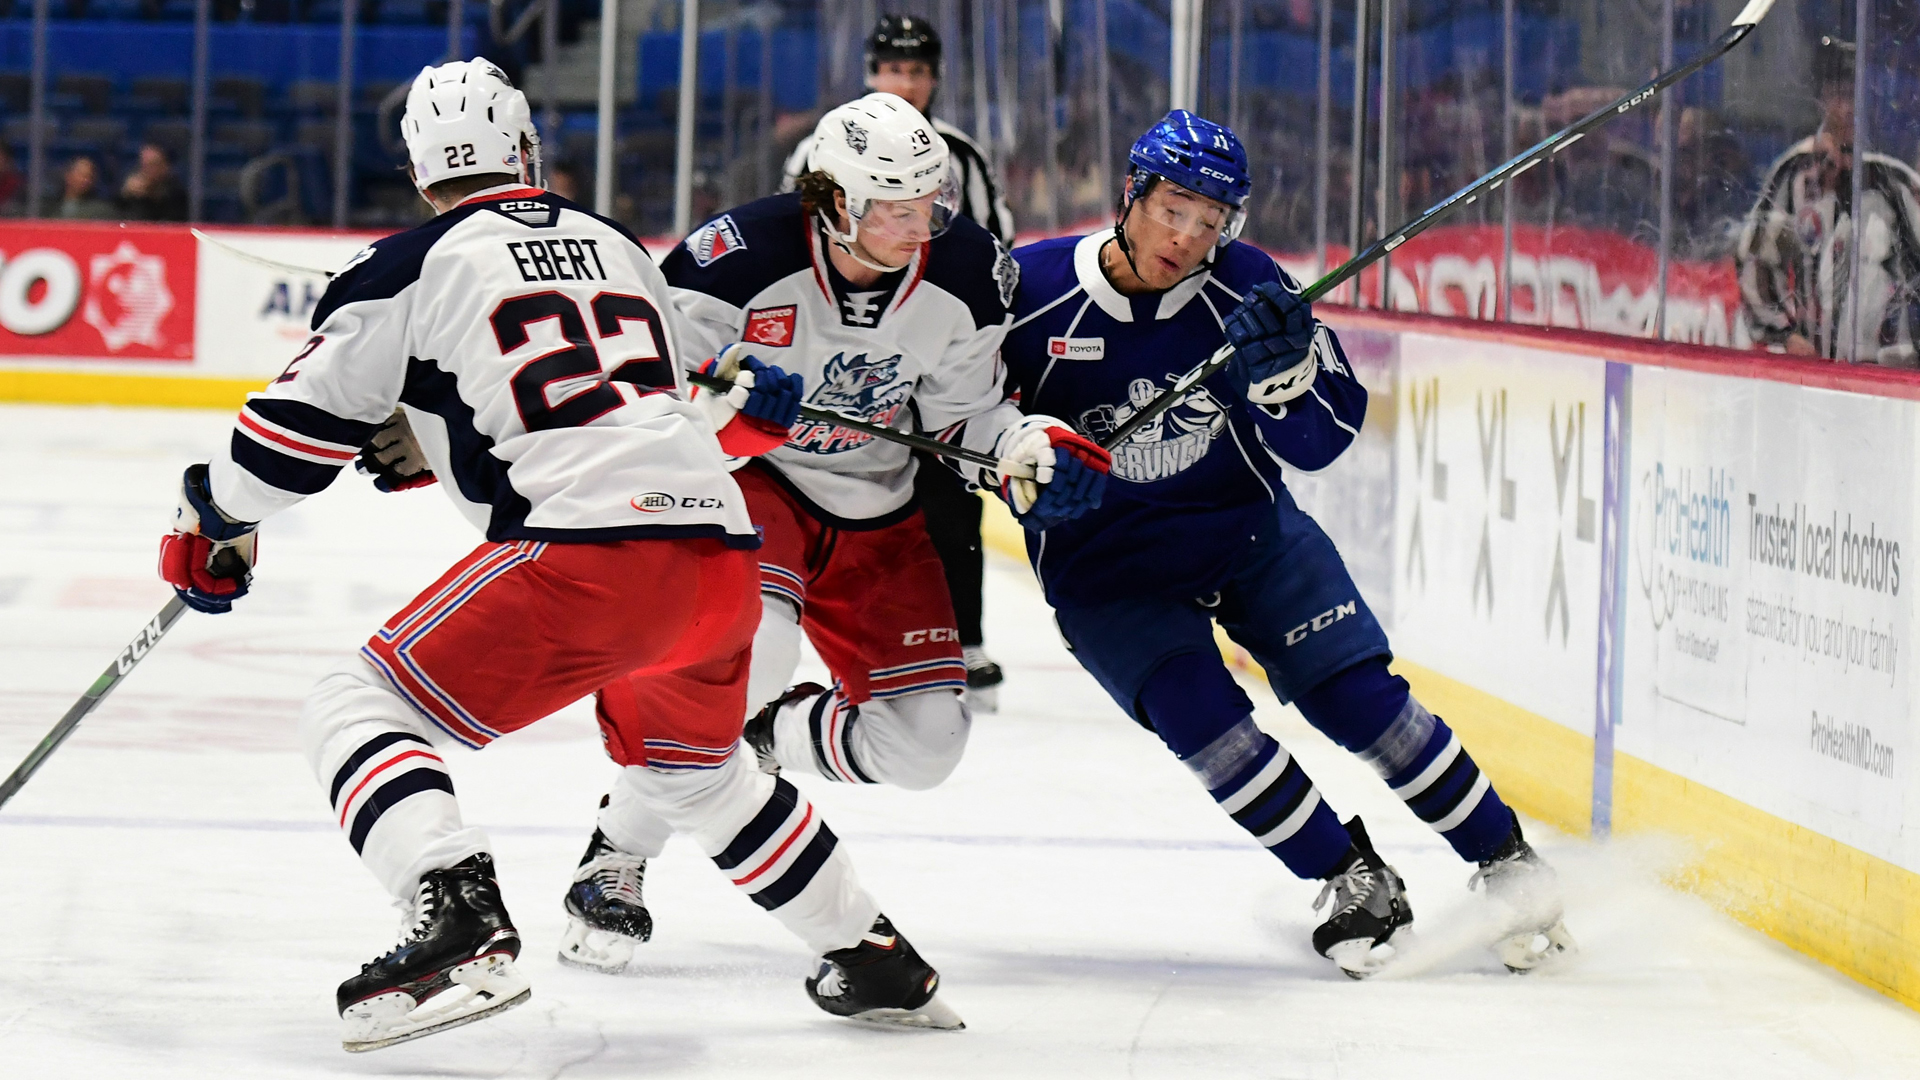 Crunch roll past Wolf Pack, 3-1